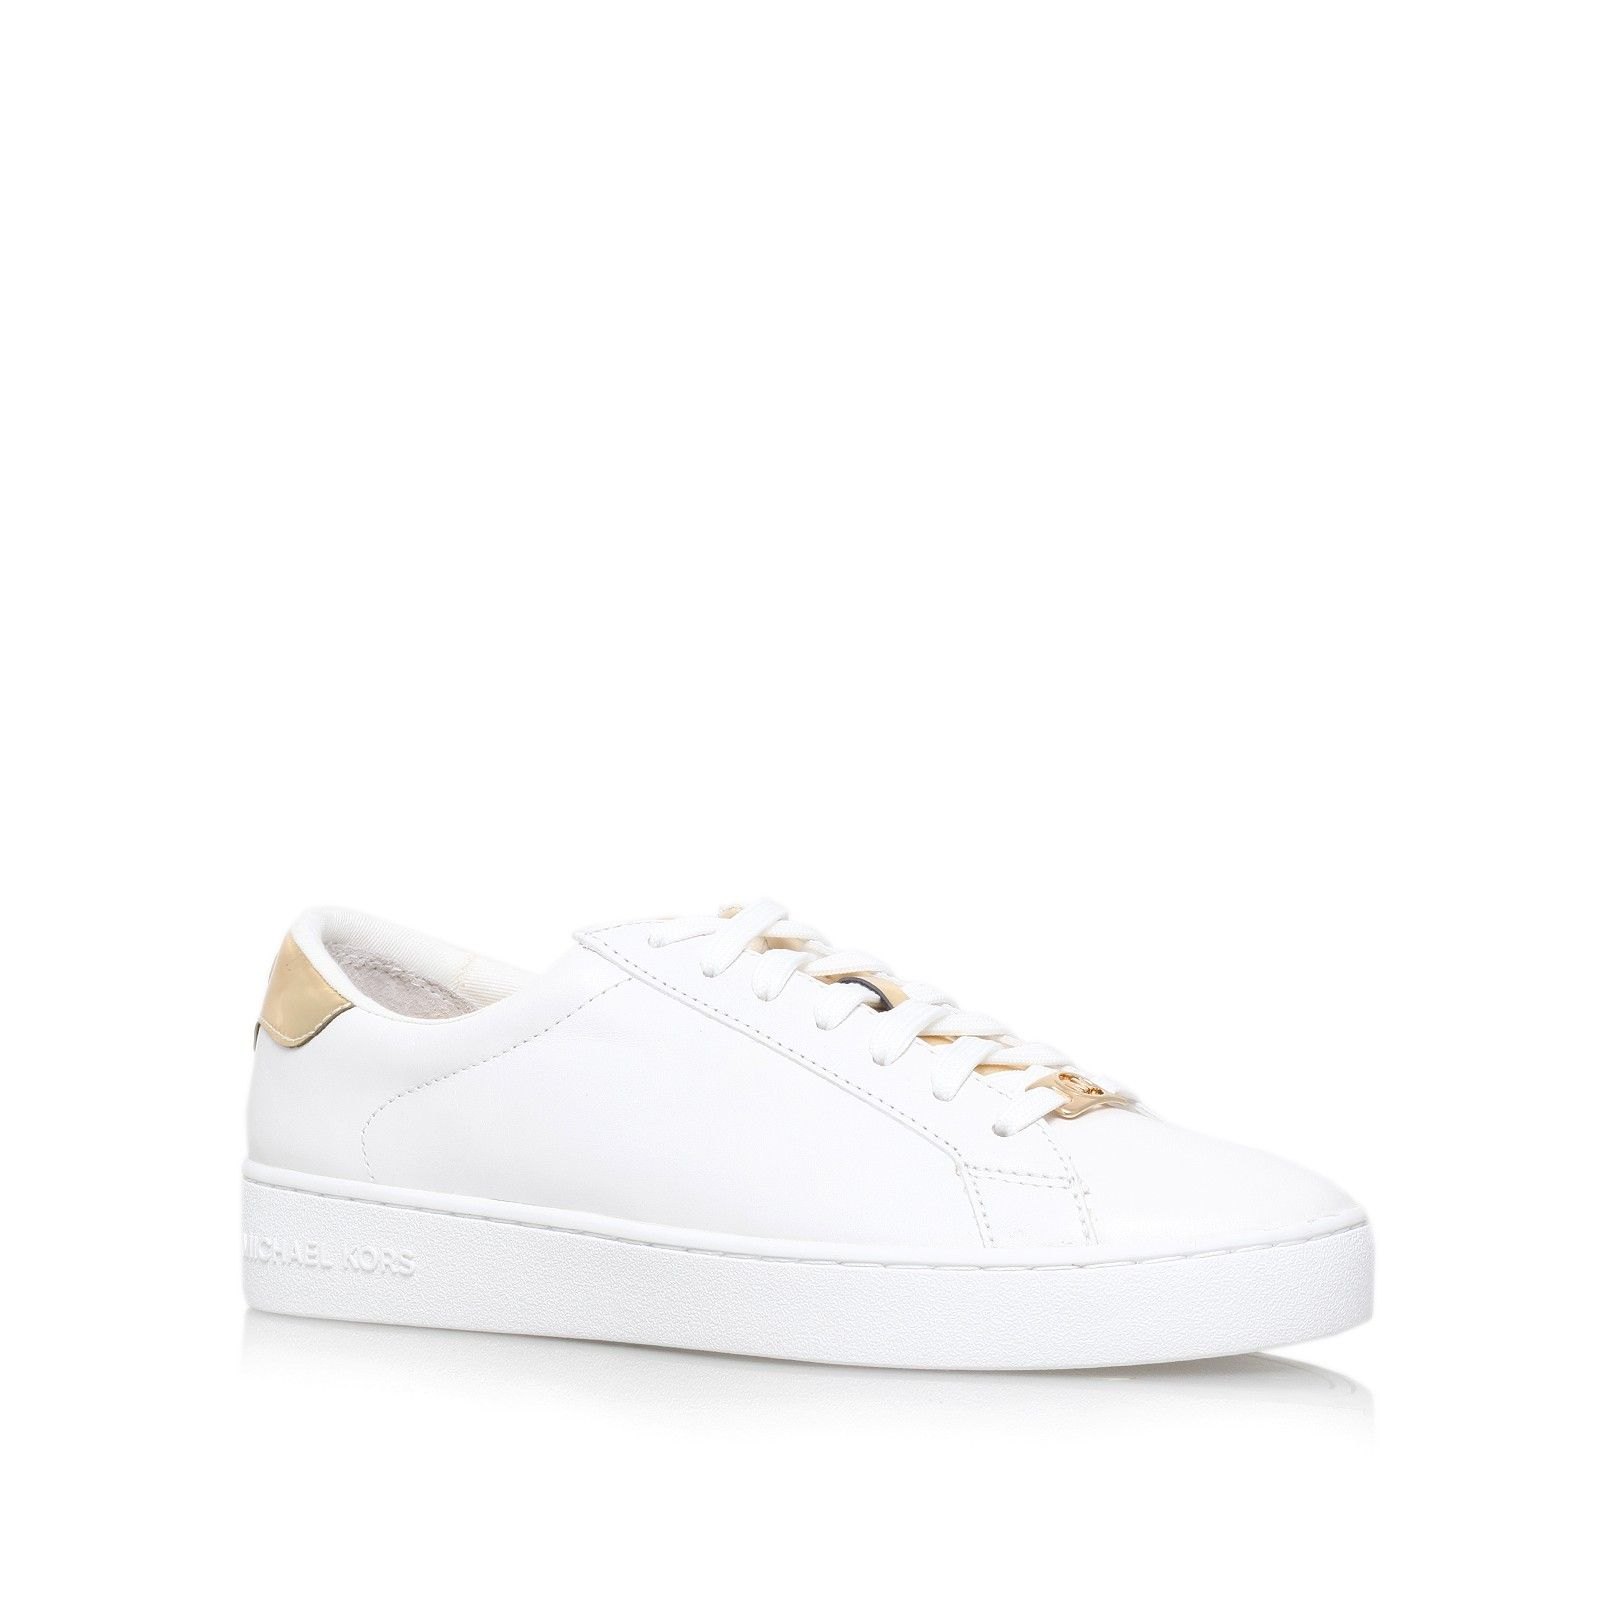 irving lace up white low top trainers from Michael Michael Kors Kurt  Geiger- £125 817f3b4aef73